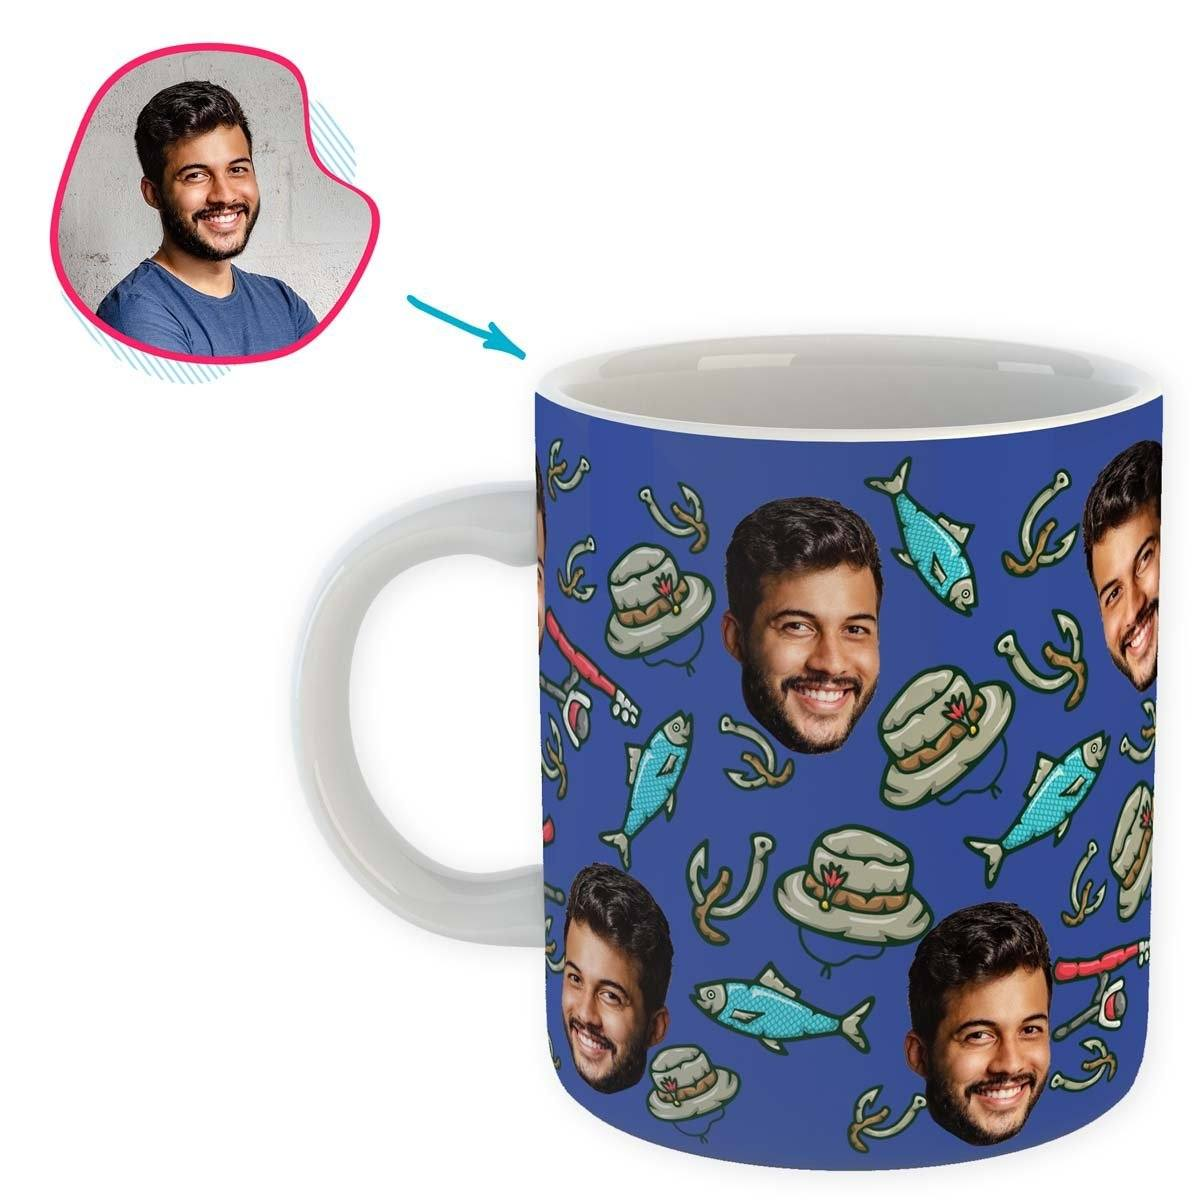 Darkblue Fishing personalized mug with photo of face printed on it